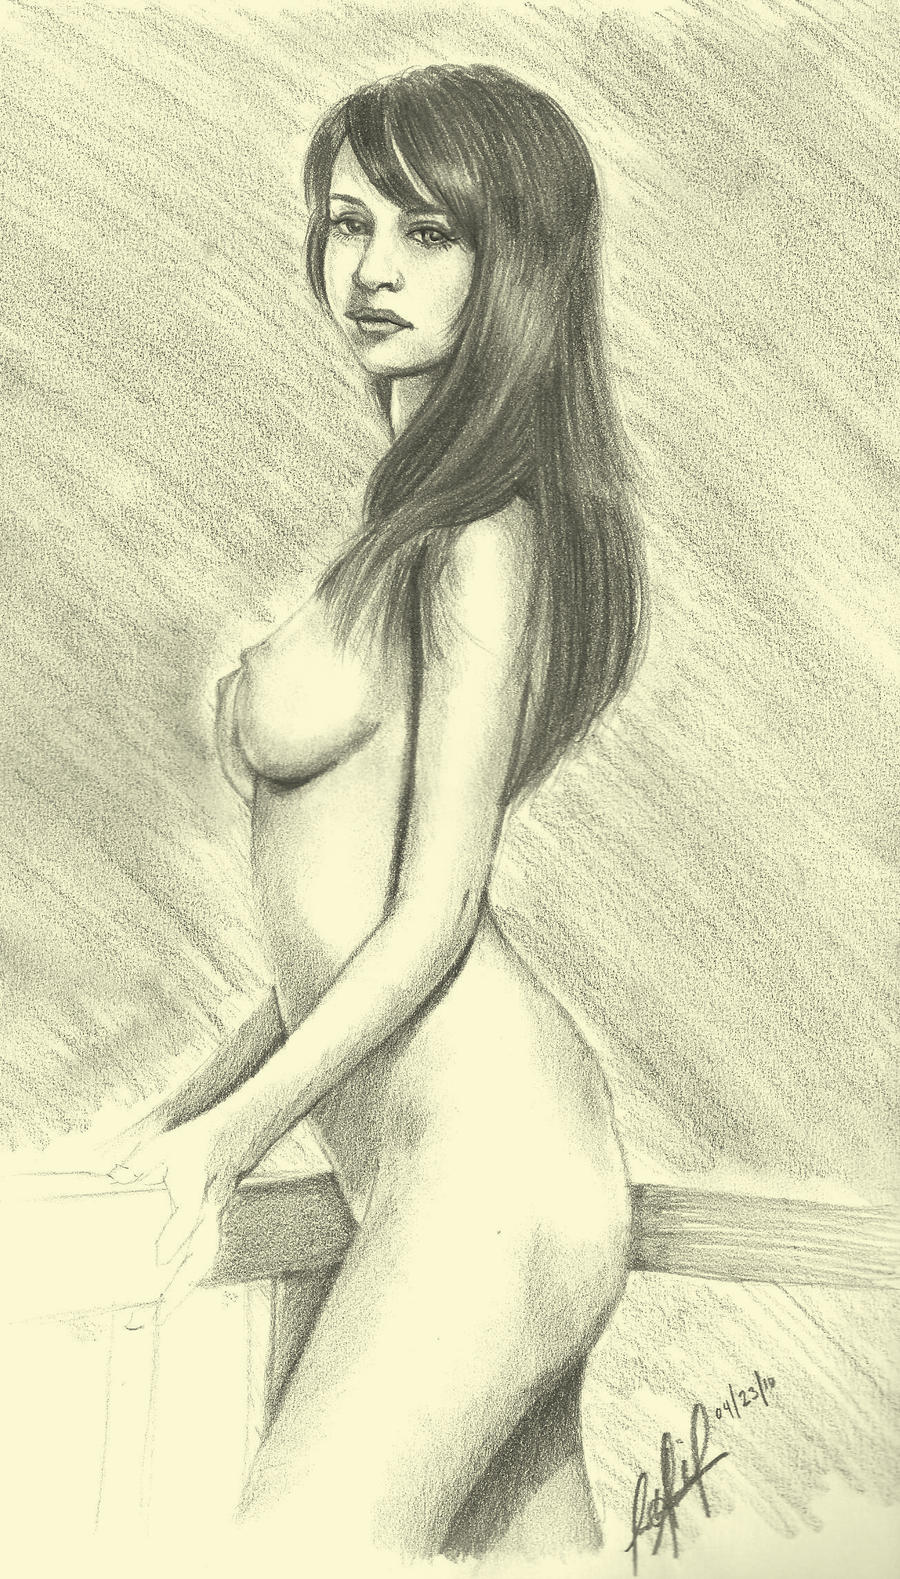 Dick pencil drawing girls swimming naked manga drillinge